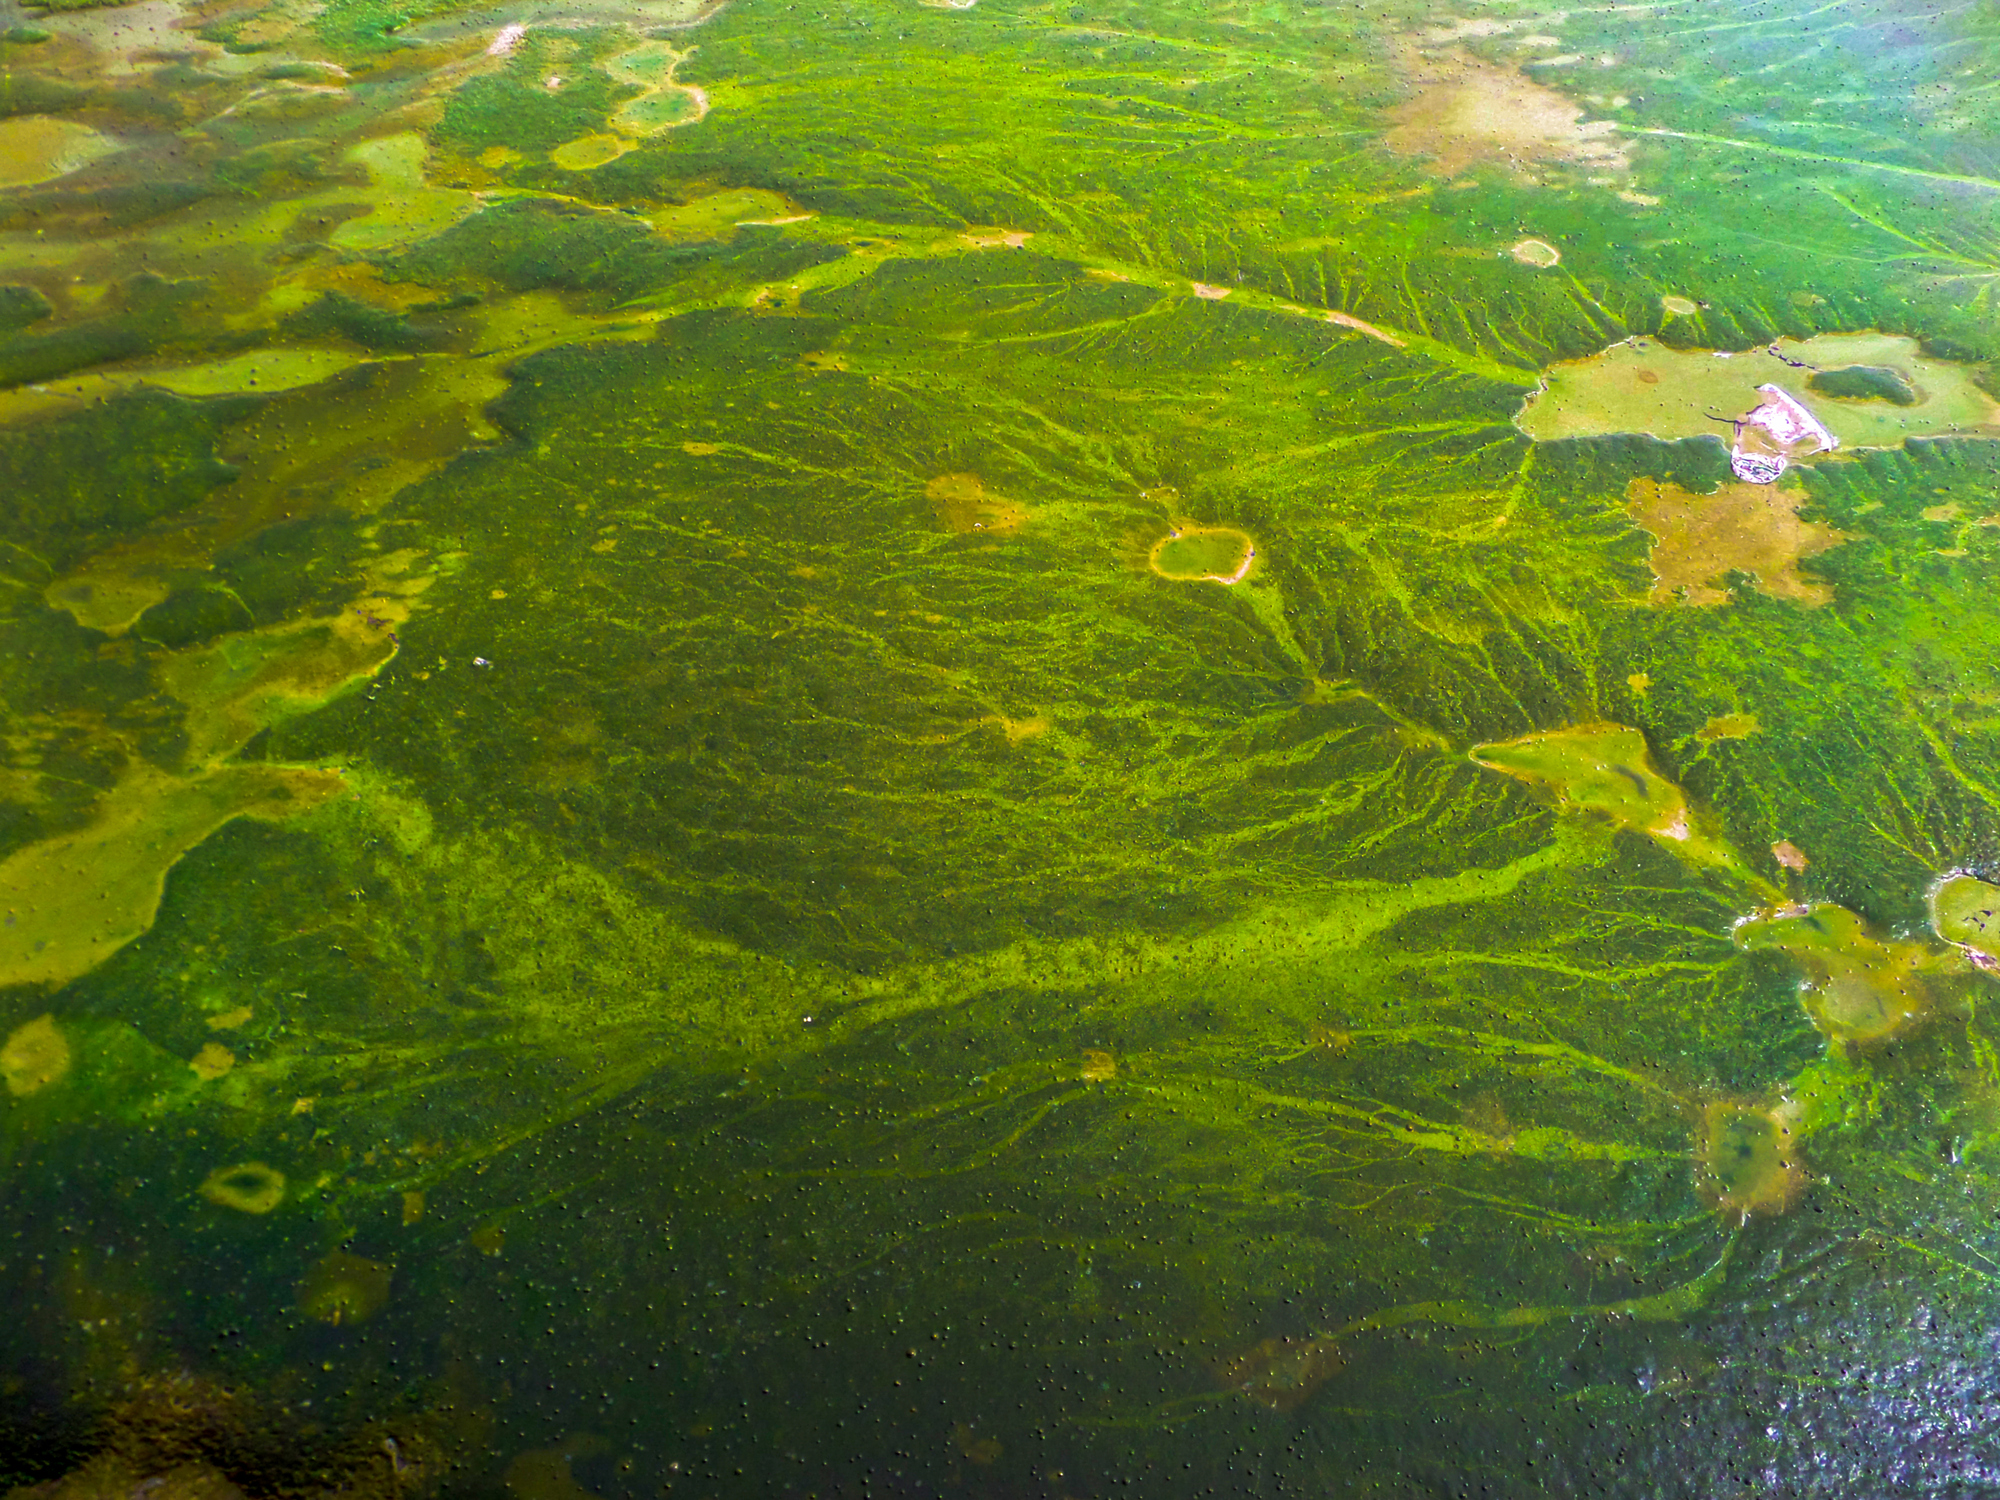 Harmful algal blooms (HABs) affect water quality and endanger human and environmental health